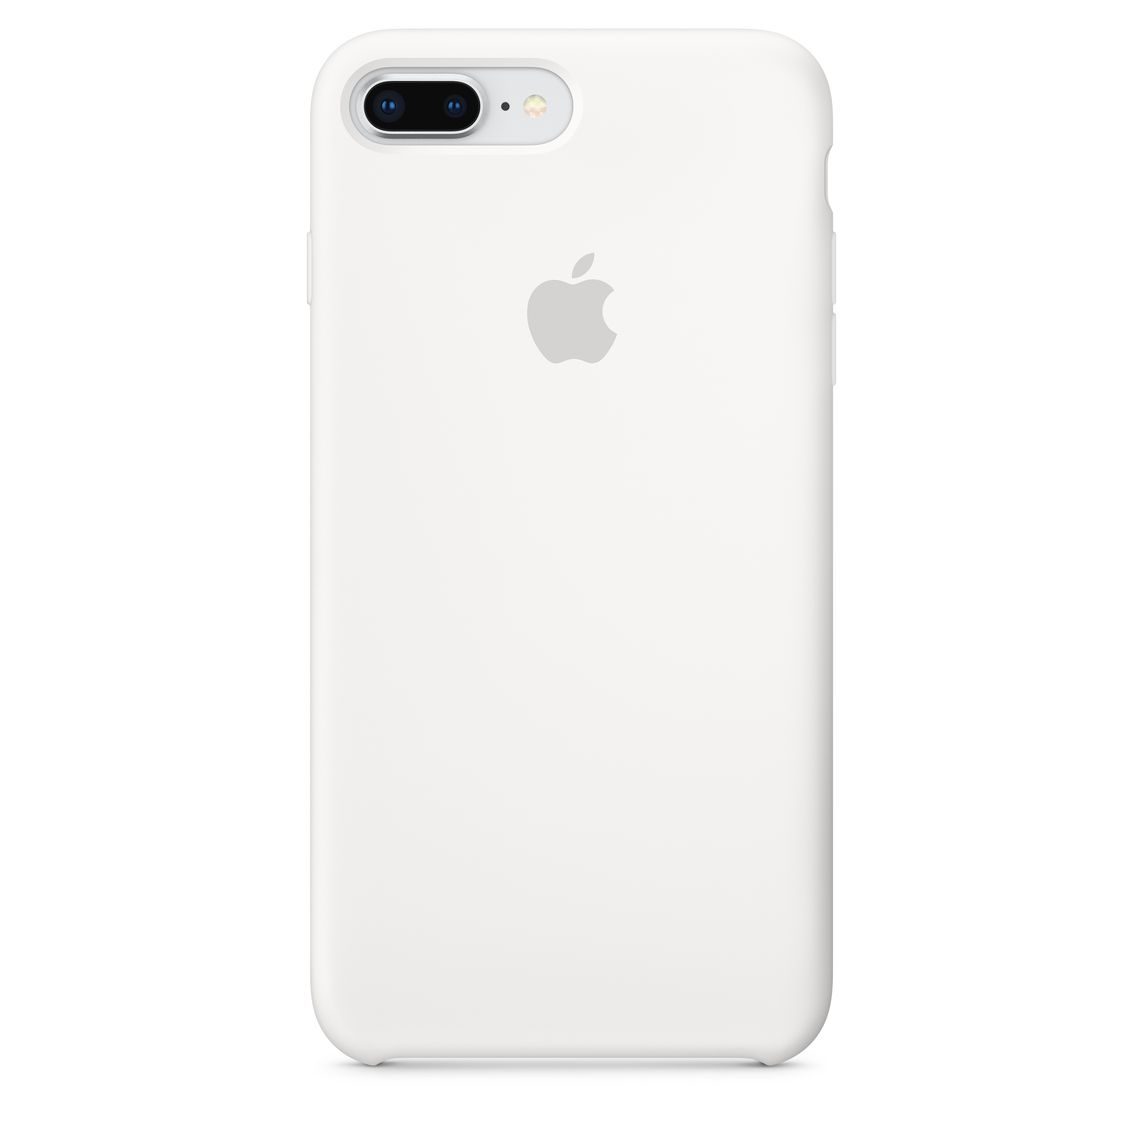 new products 82744 1b4df iPhone 8 Plus / 7 Plus Silicone Case - White